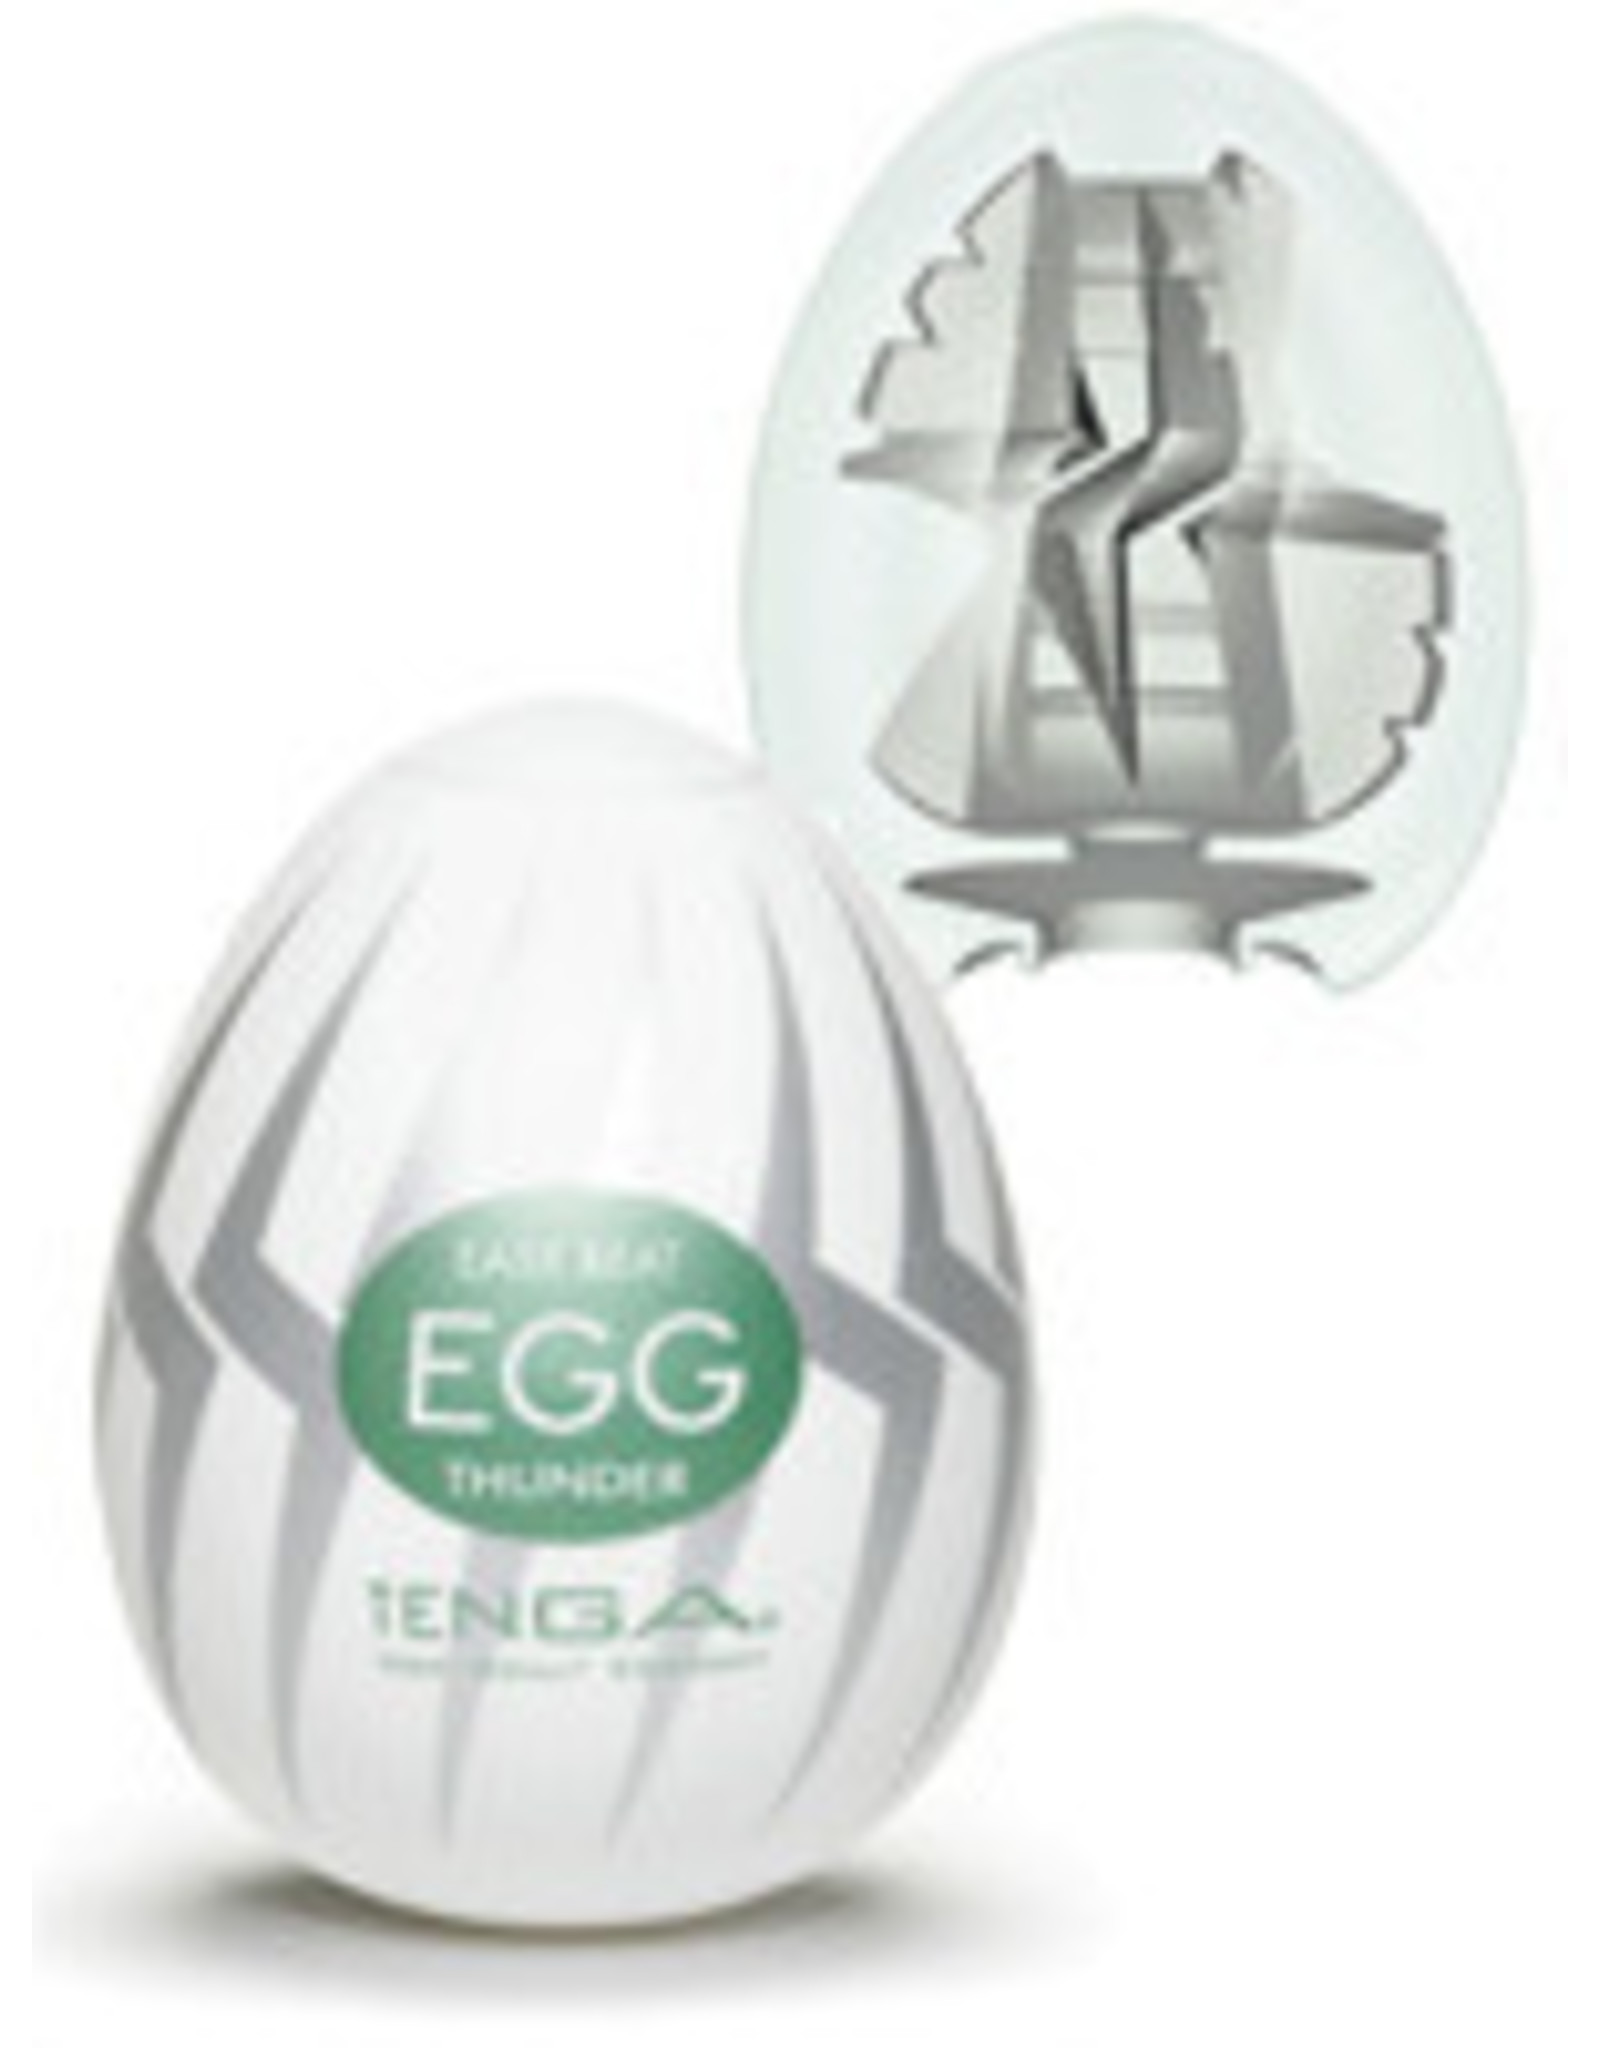 Tenga - Hard Boiled Egg Thunder